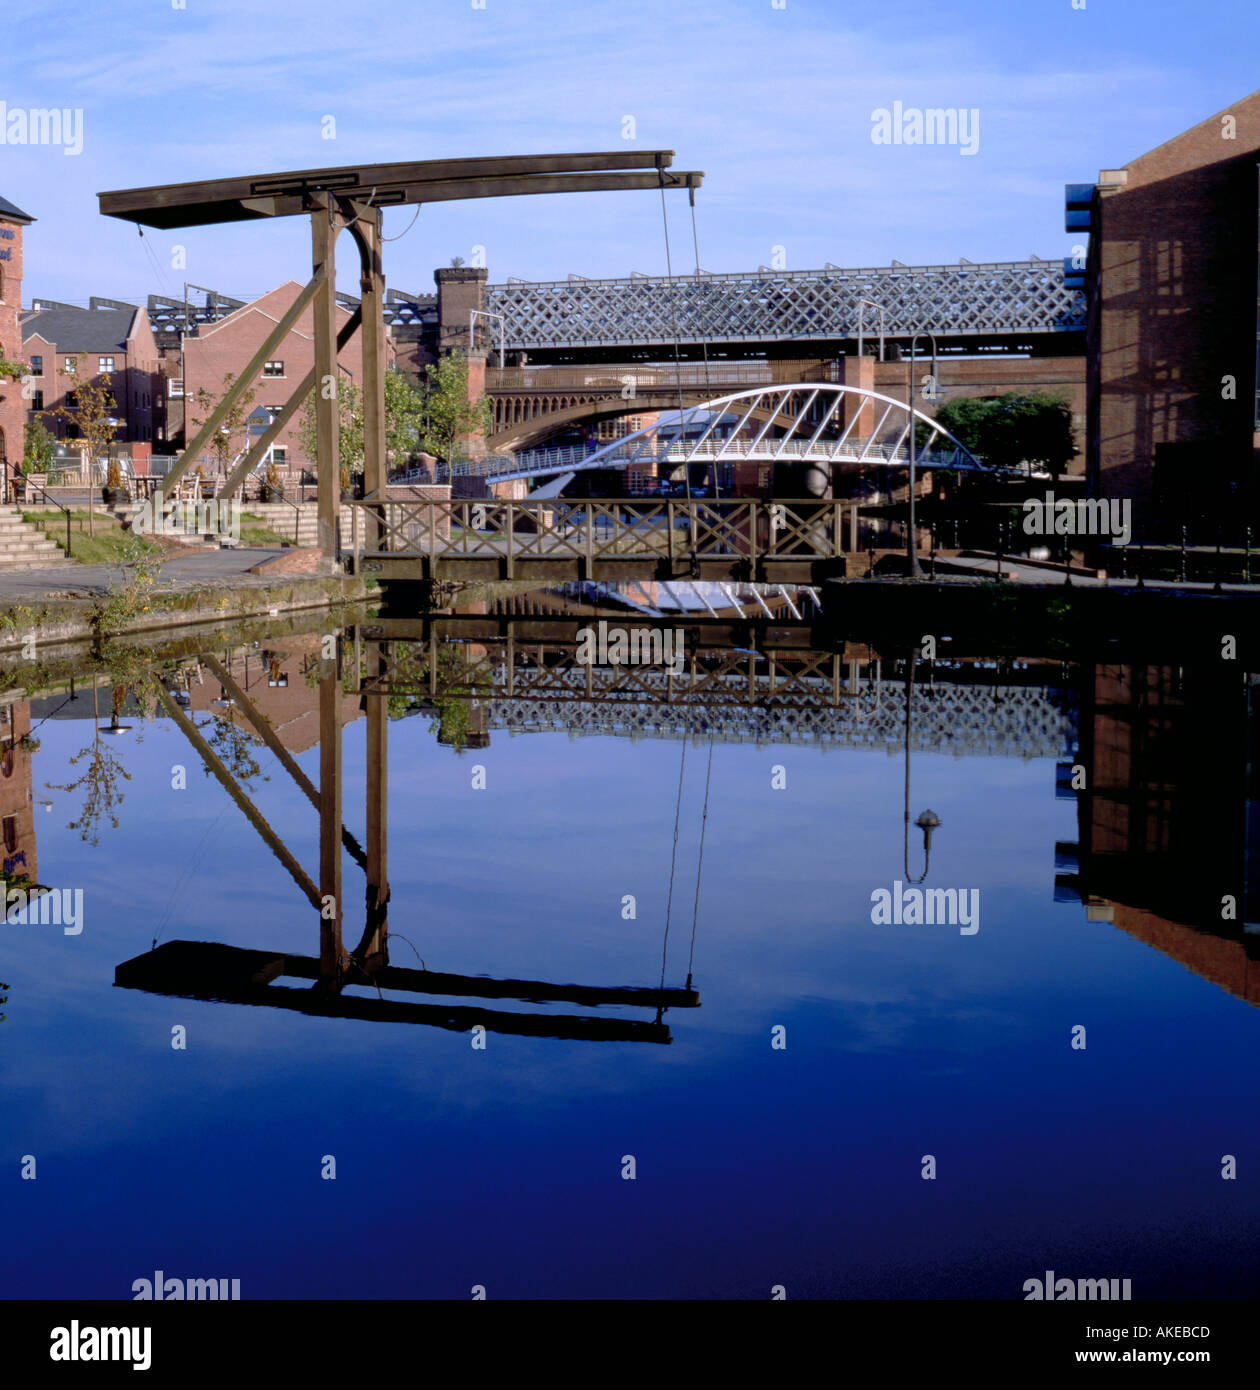 Four different old and new bridge types, Merchants' Quay, Castlefield Urban Heritage Park, Manchester, England, UK. Stock Photo